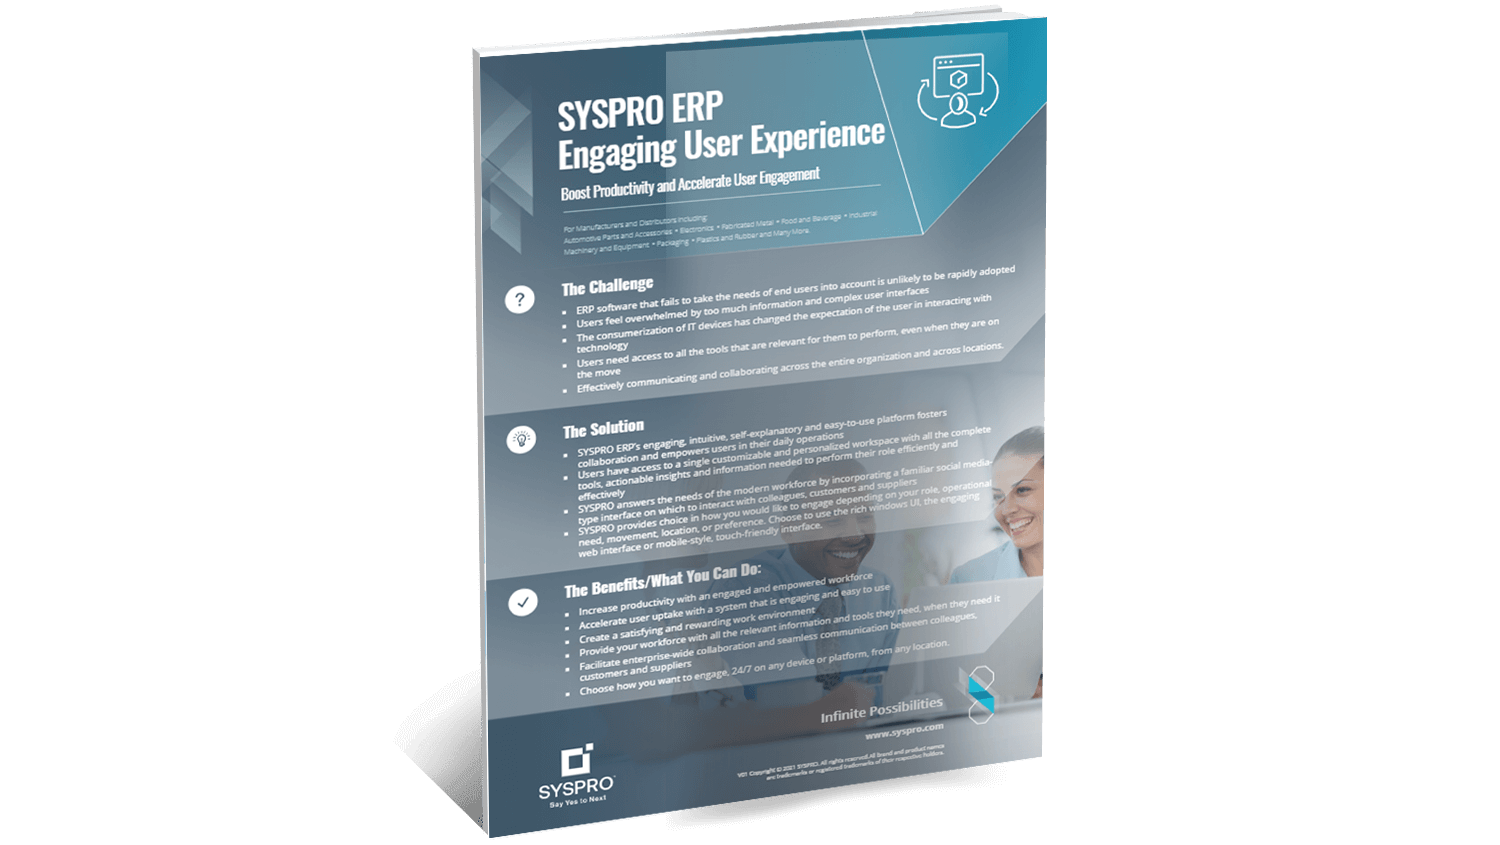 SYSPRO-ERP-software-system-engaging-user-experience-infographic